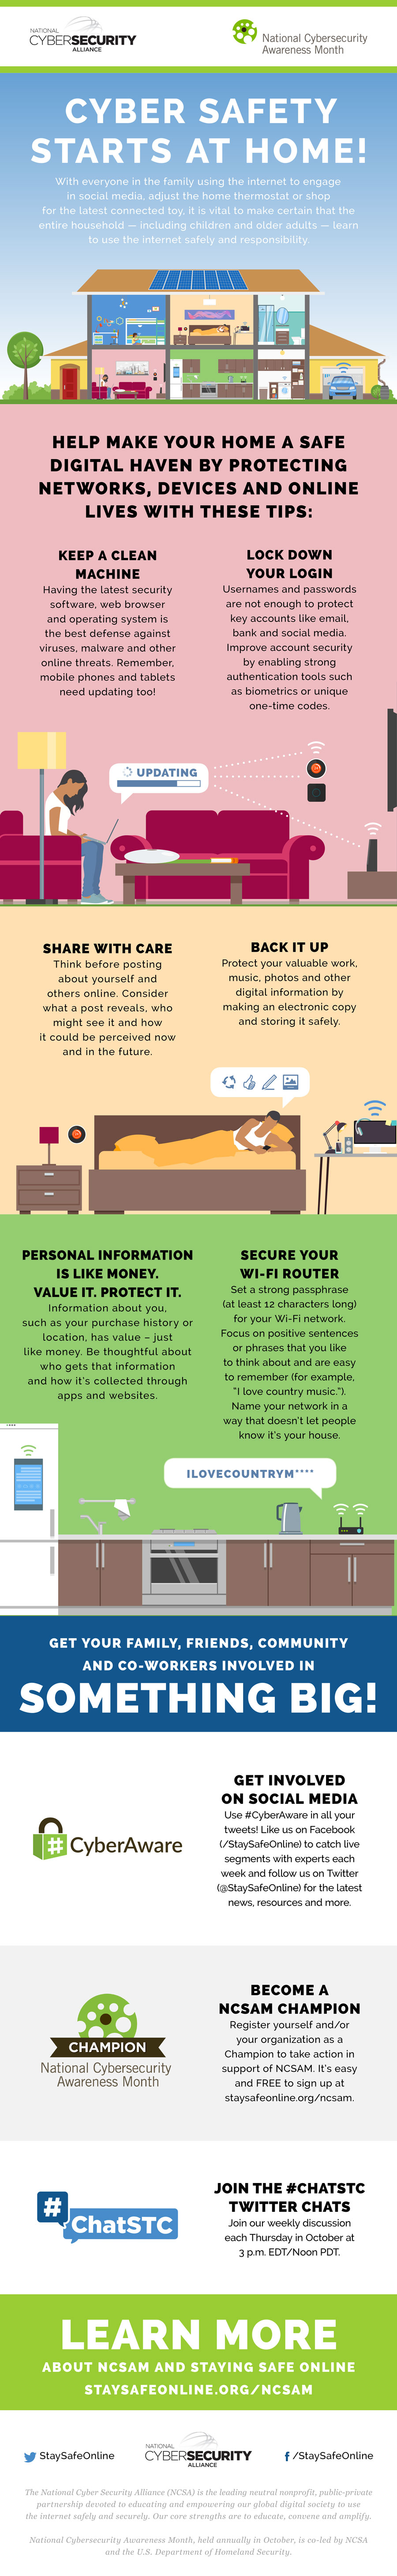 Cyber Safety Starts at Home inforgraphic